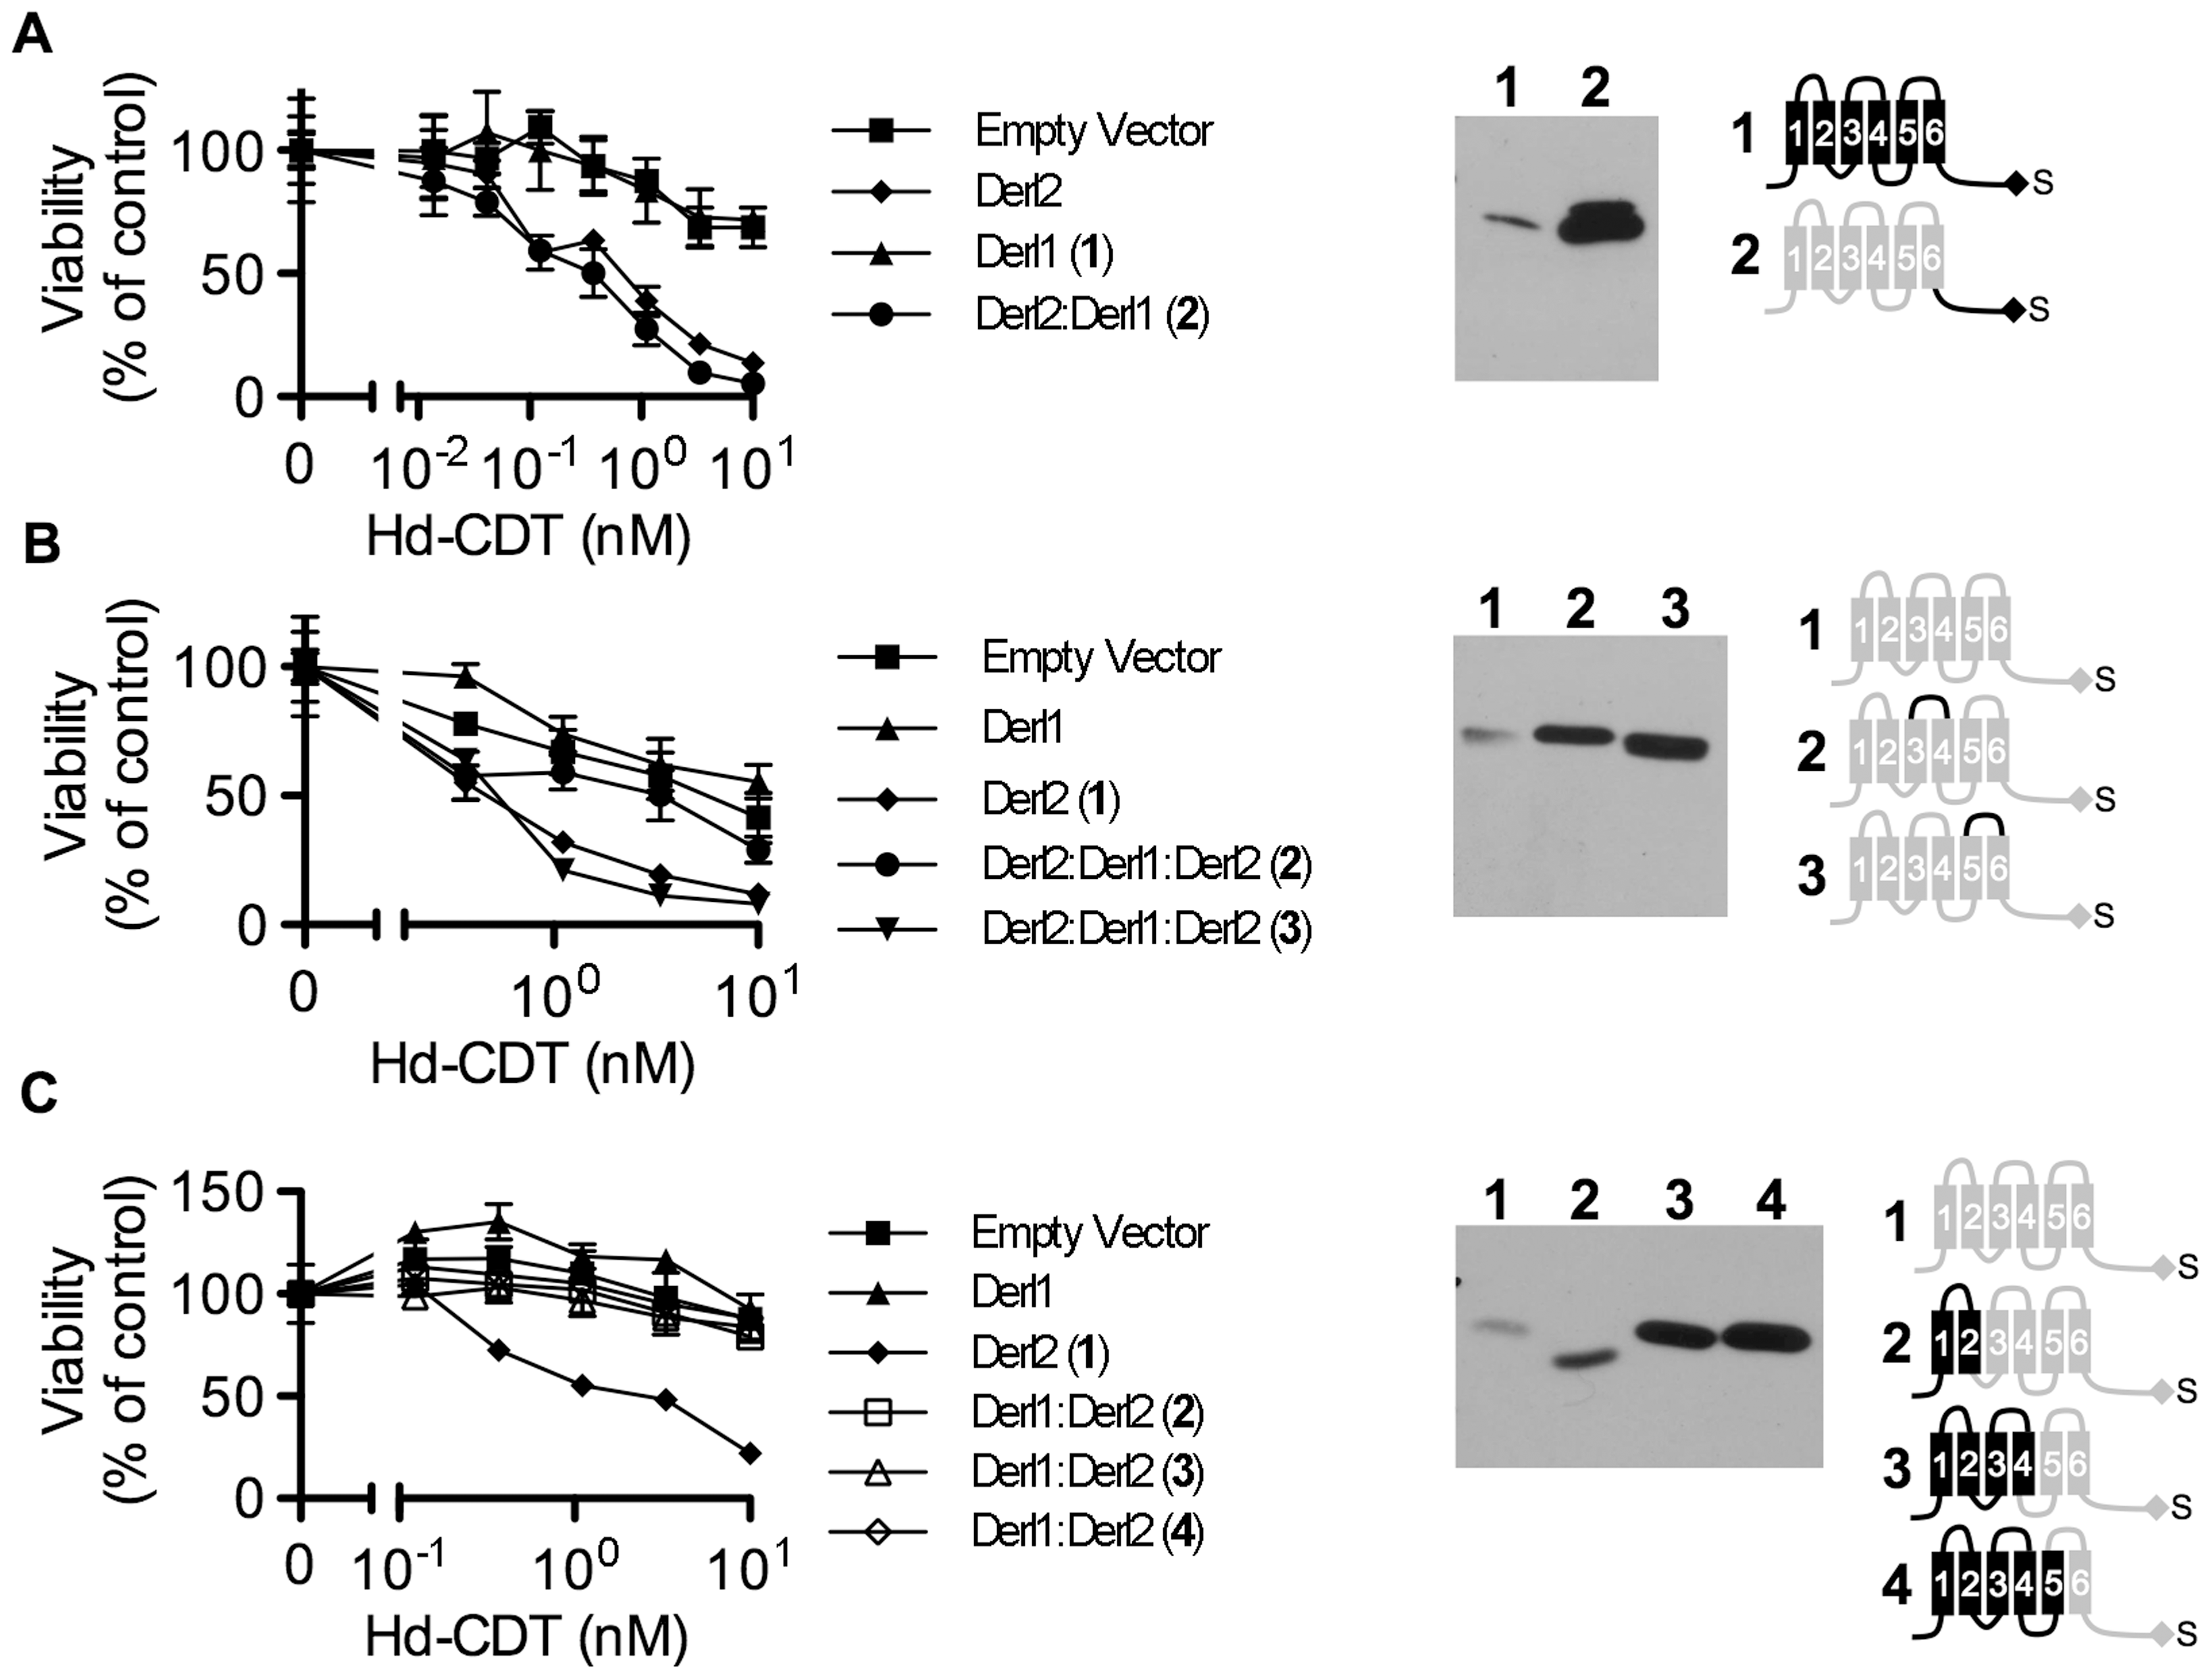 Identification of Derl2 domains required for CDT intoxication.